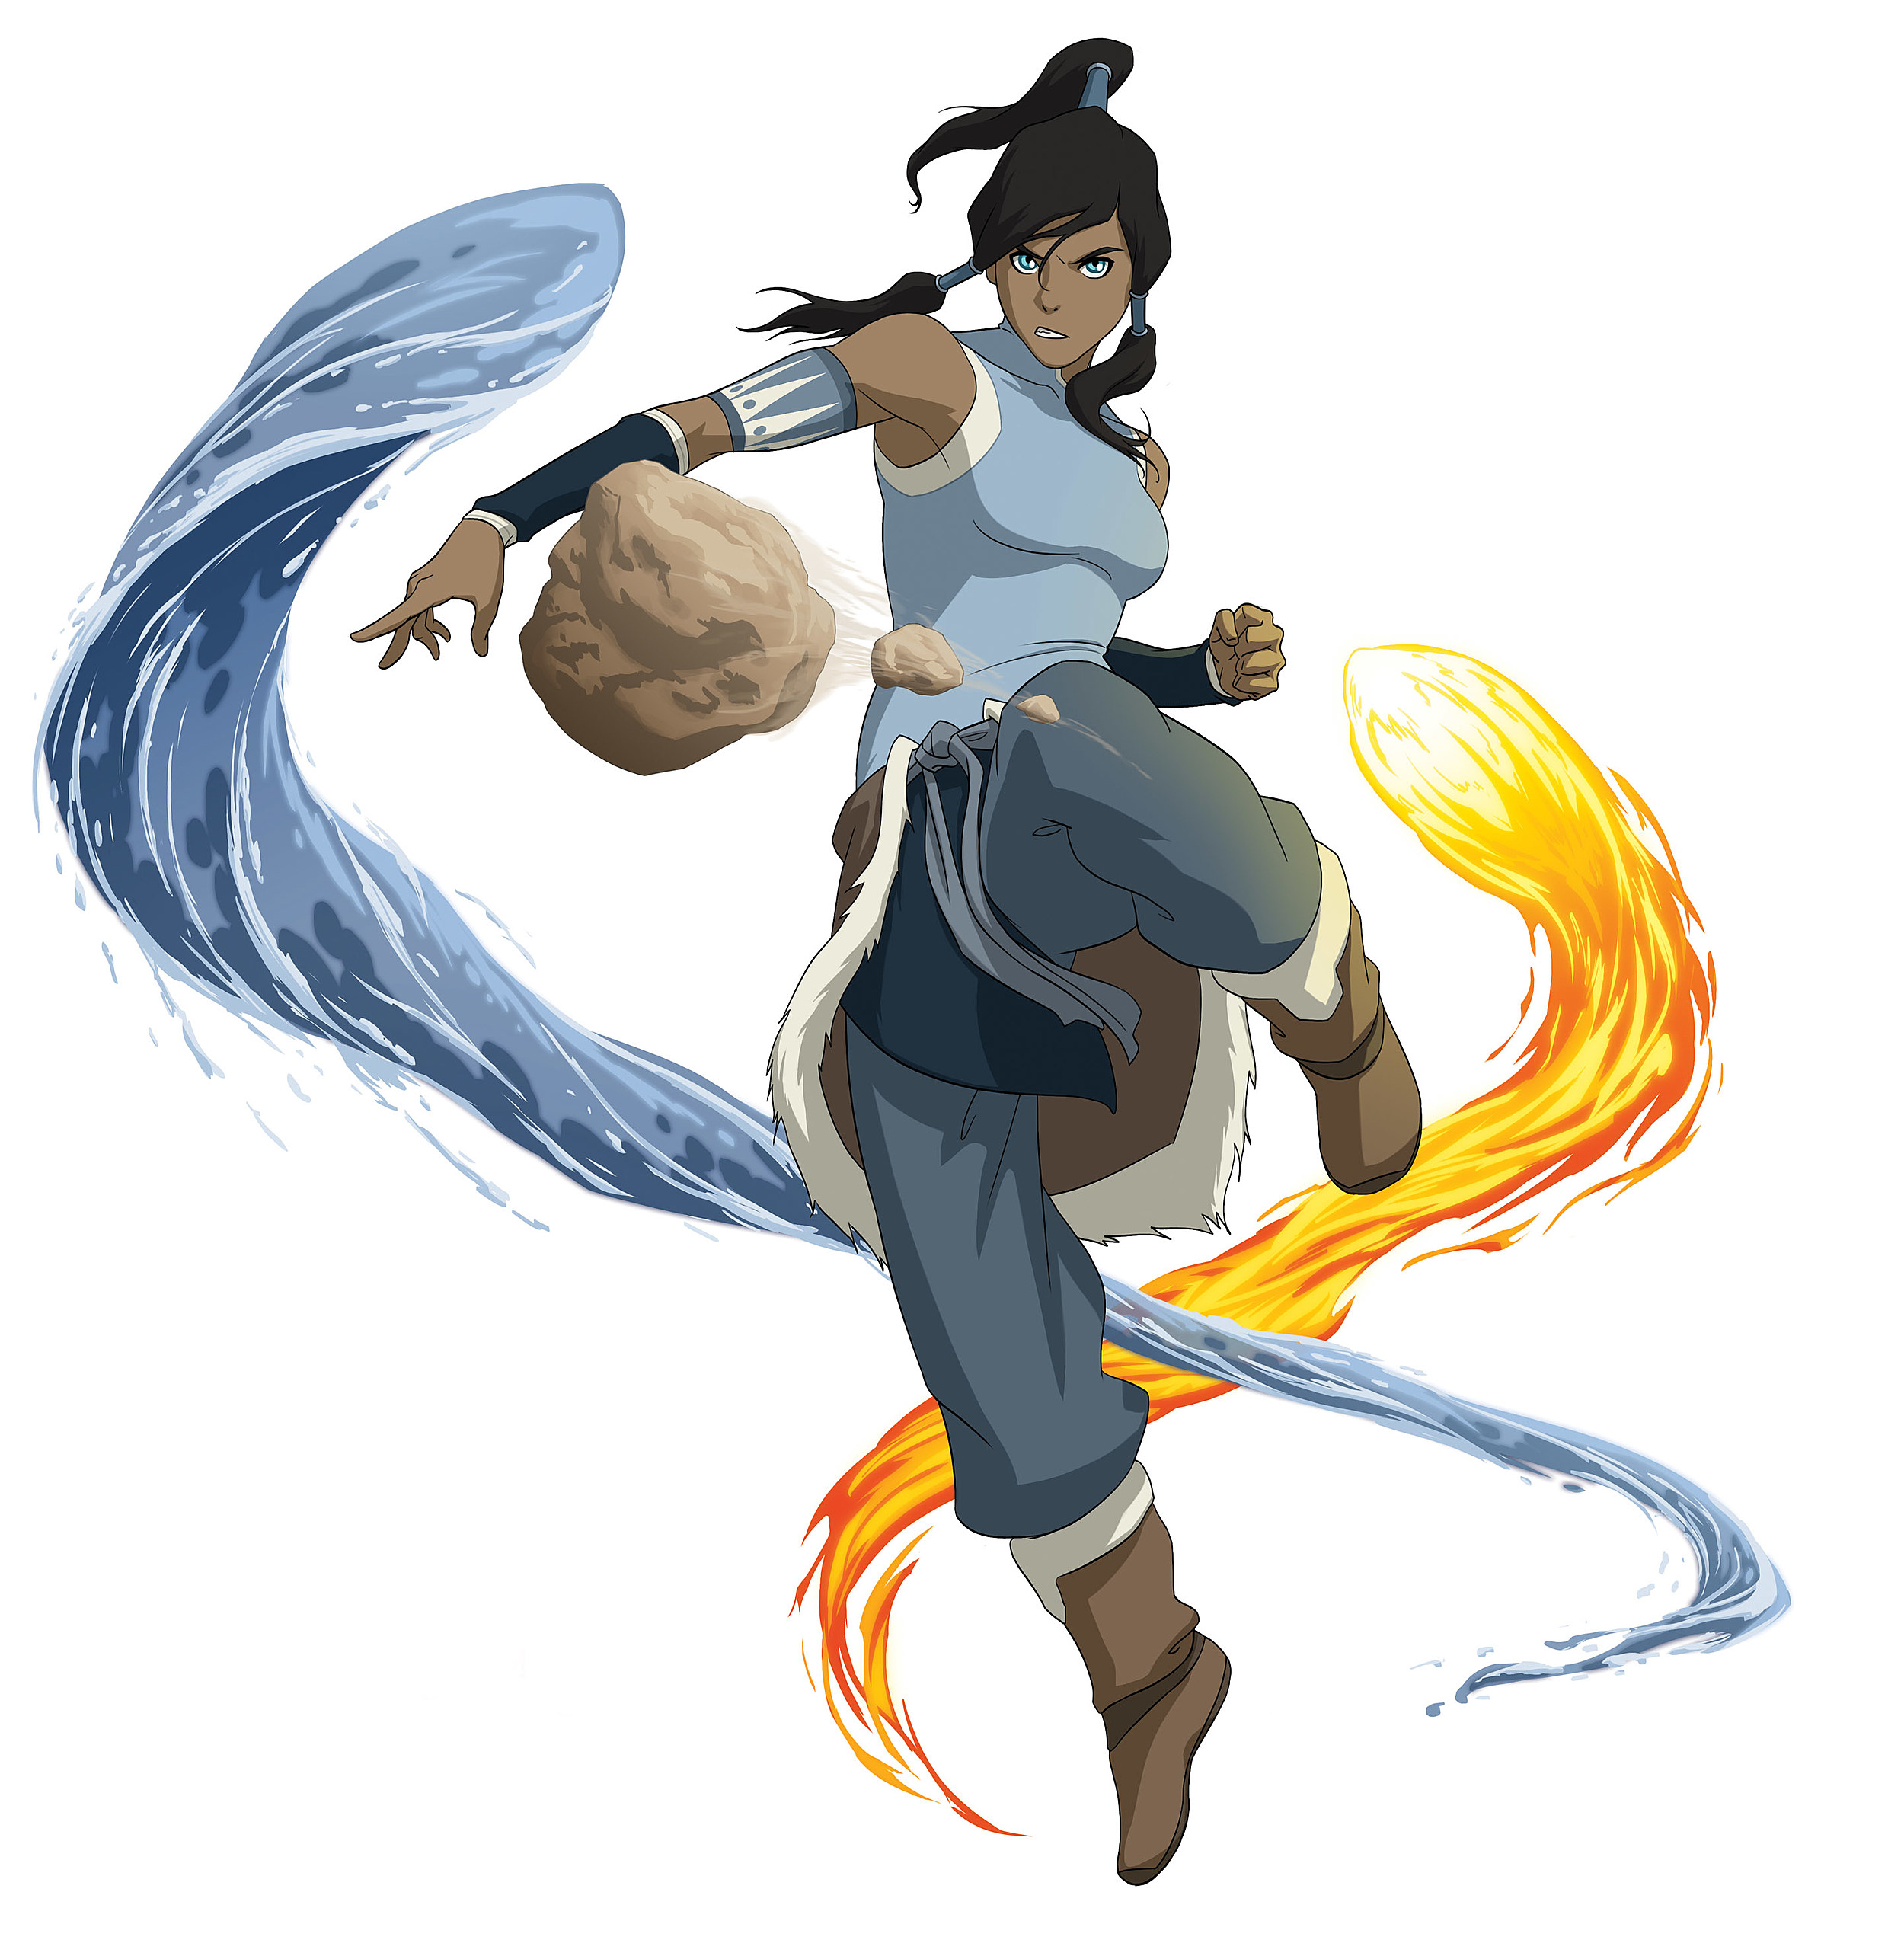 Avatar 2 Cast: 'The Legend Of Korra' Creators On Bringing Back Bending